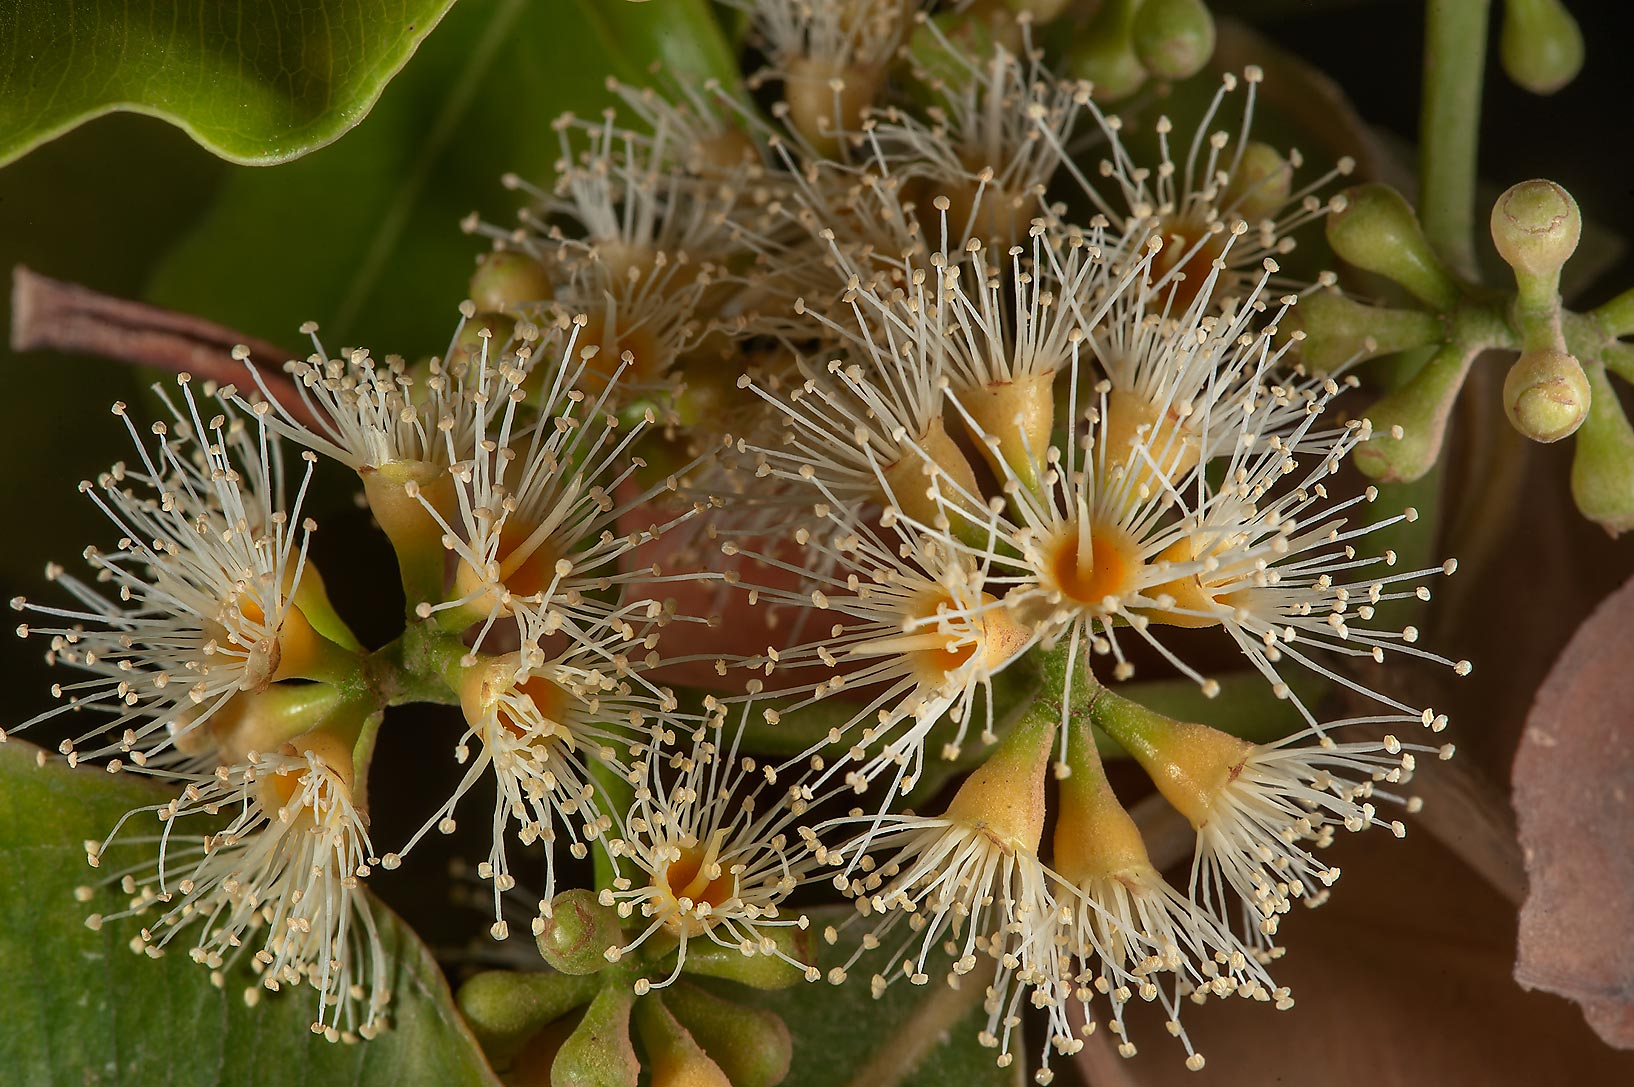 Flowers of rainbow gum tree (Eucalyptus deglupta...Sahl St. in Onaiza area. Doha, Qatar